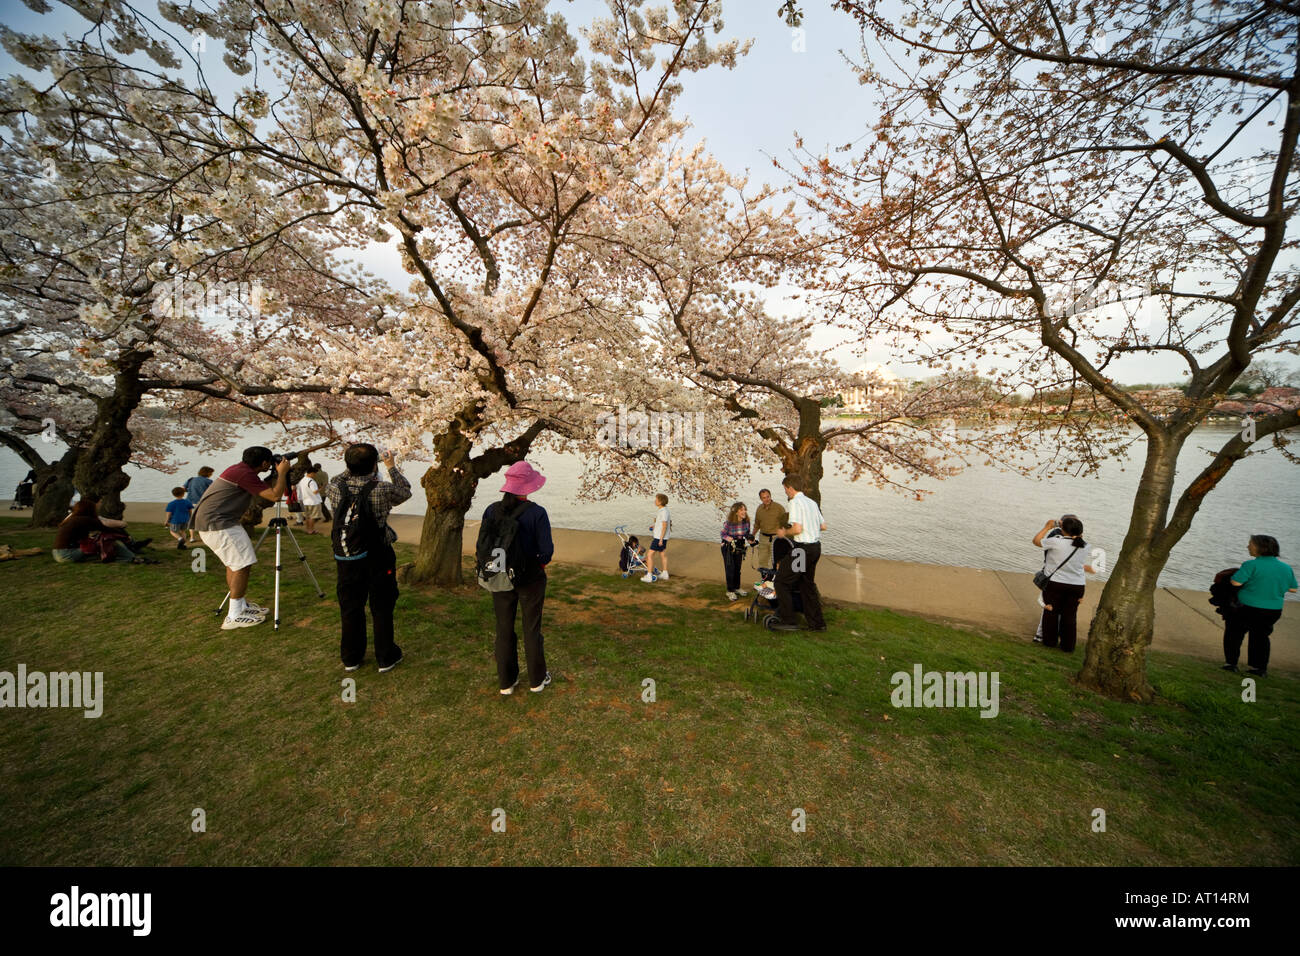 Taking pictures at the National Cherry Blossom Festival in Washington DC. Tidal Basin with Jefferson Memorial in - Stock Image